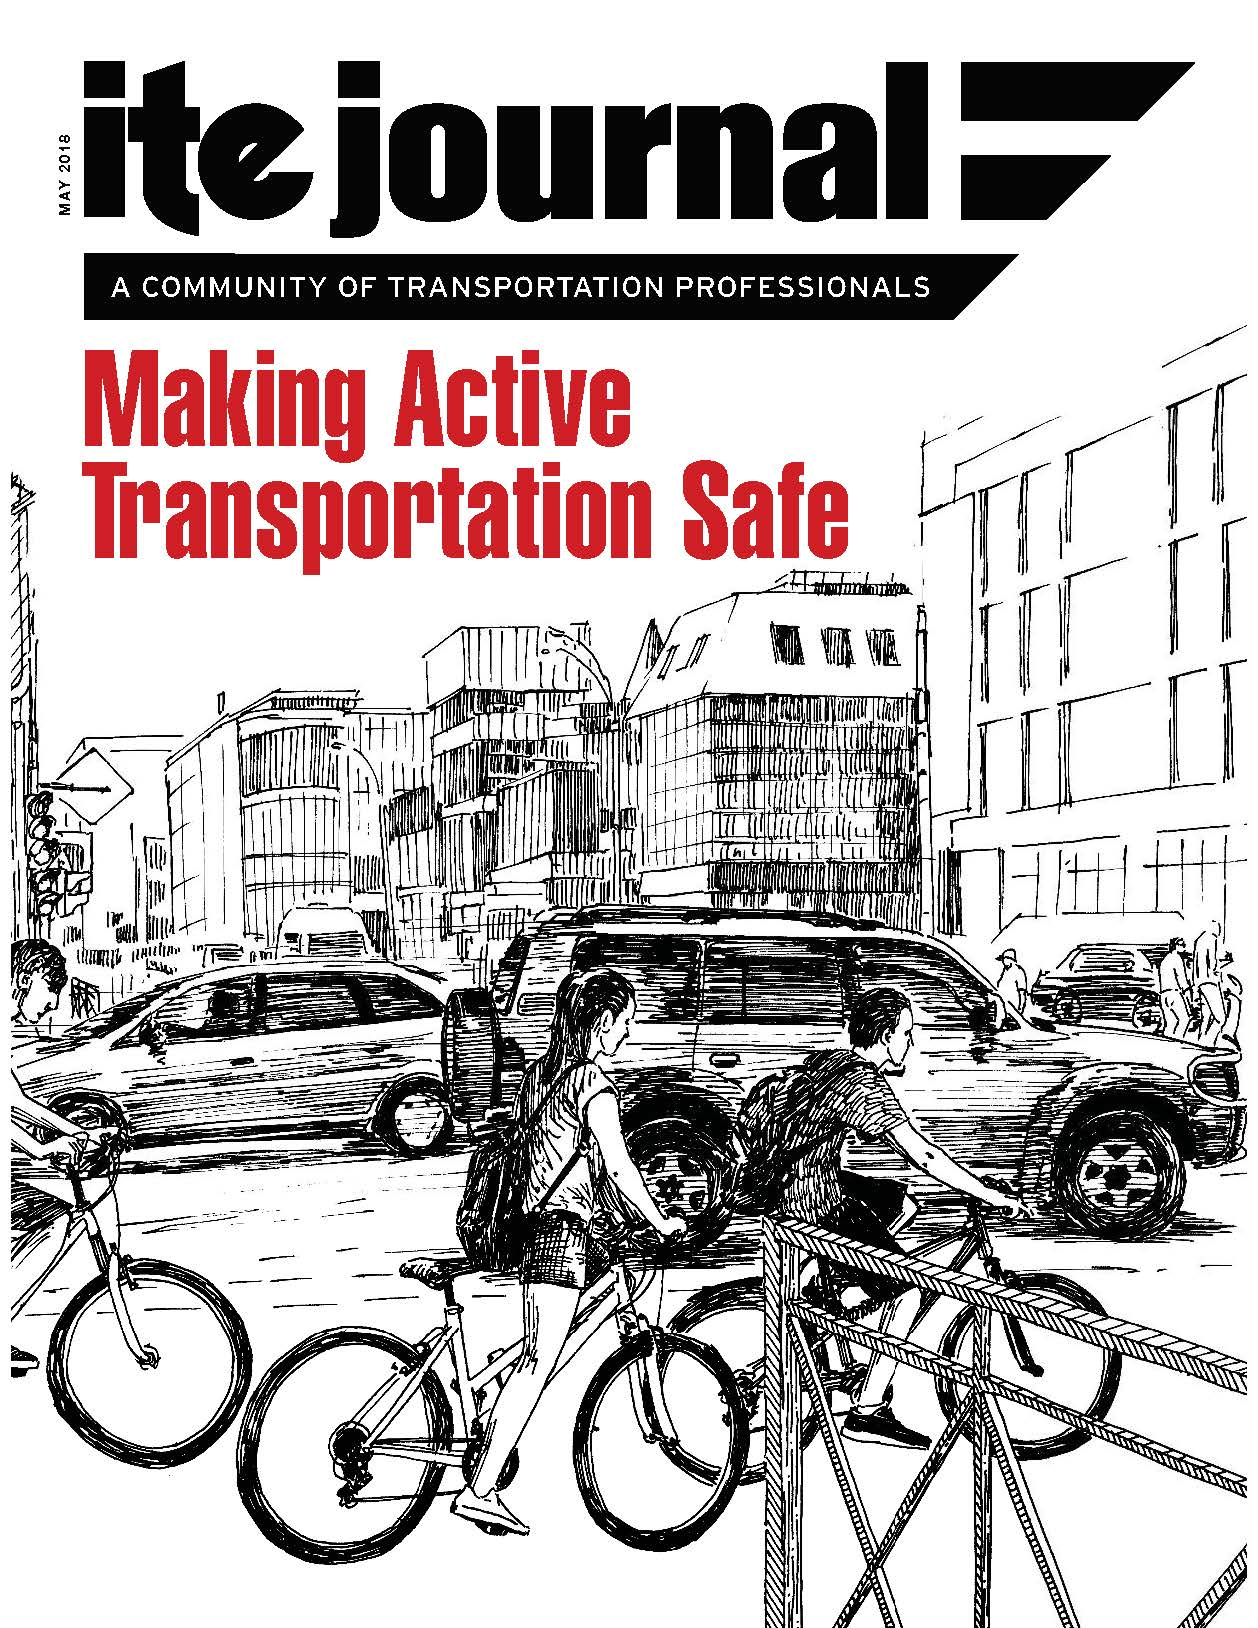 May 2018 ITE Journal cover, showing the headline Making Active Transportation Safe